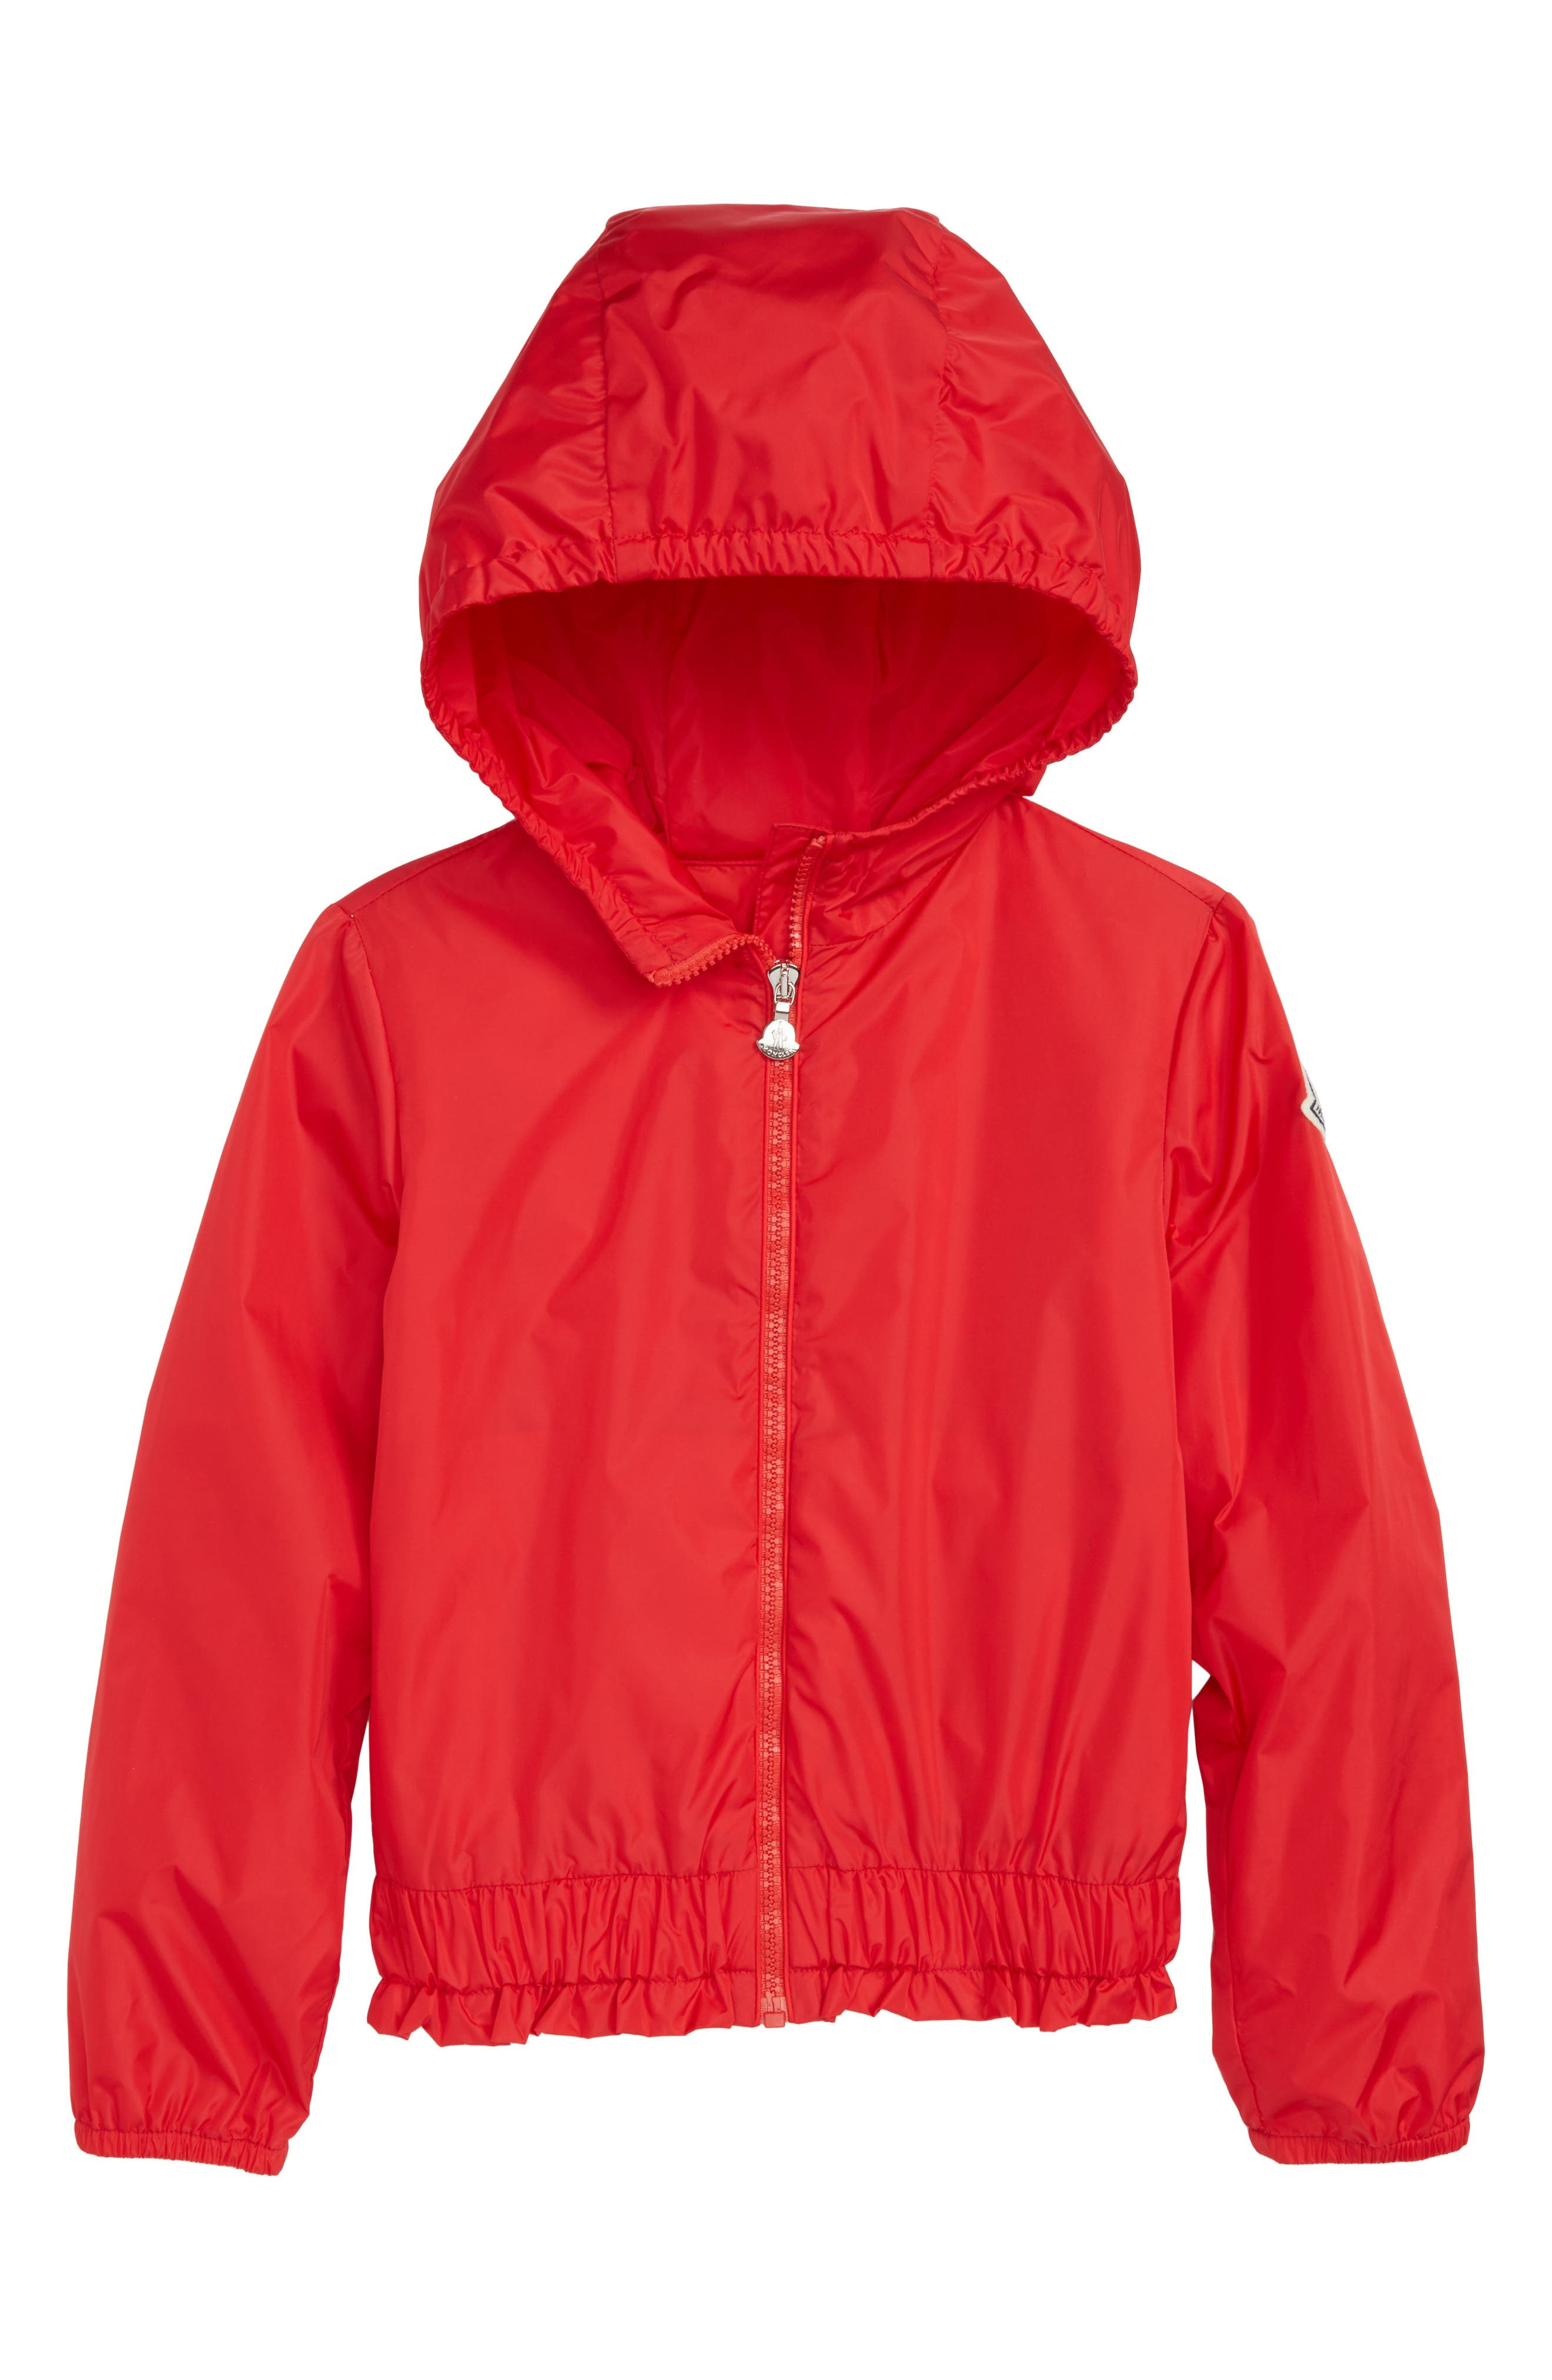 Erina Water Resistant Hooded Windbreaker,                             Main thumbnail 1, color,                             Red